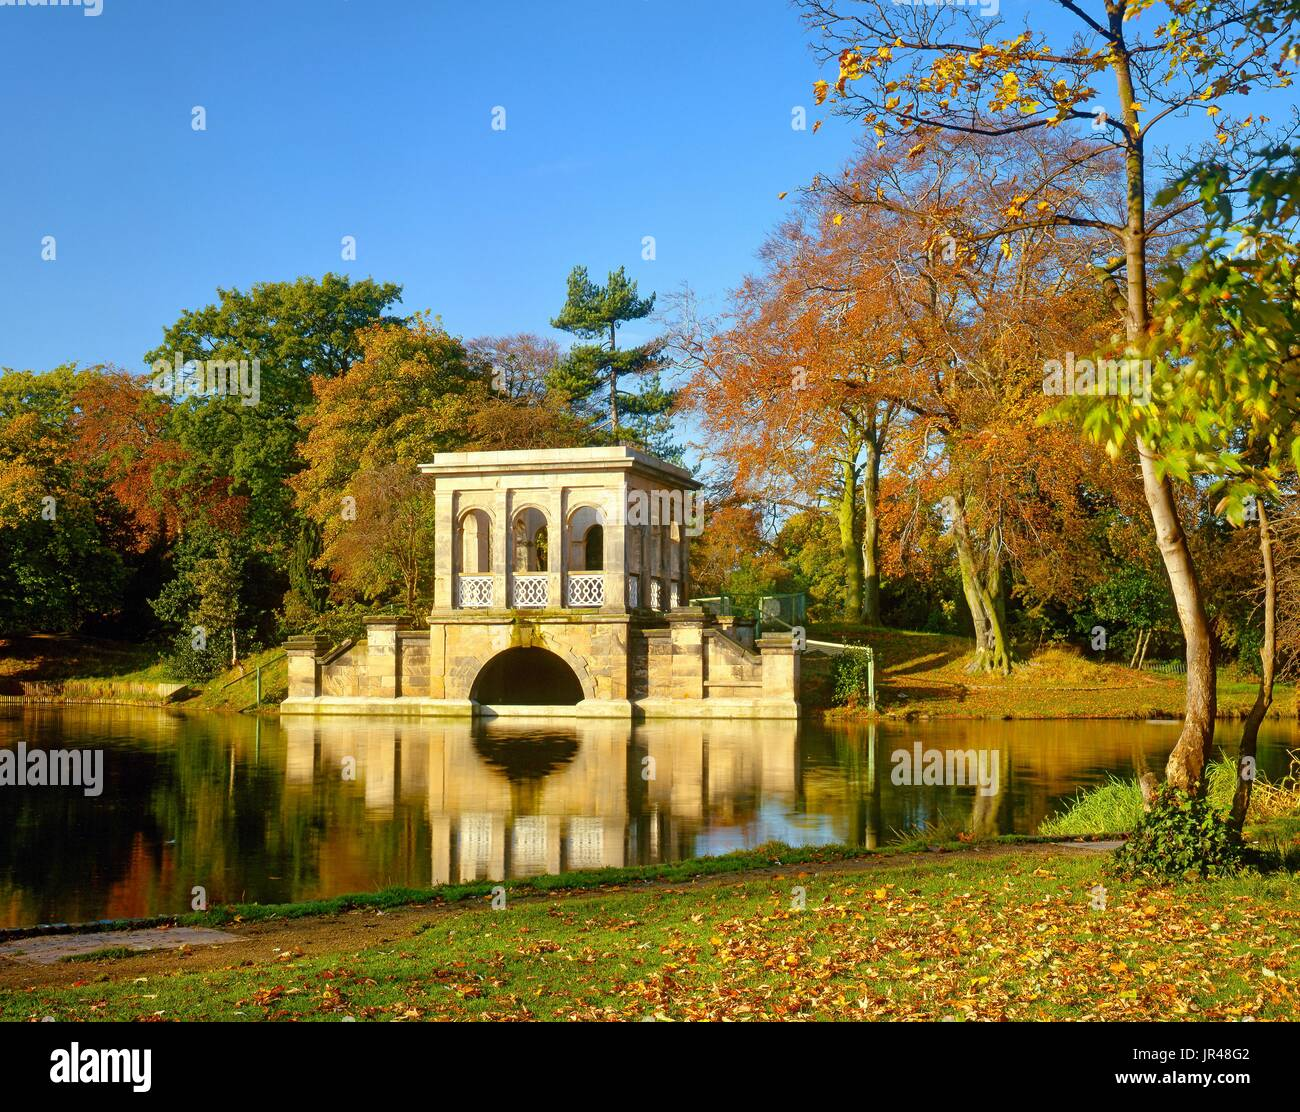 An autumn view of the boathouse in Birkenhead Park, Wirral, England - Stock Image